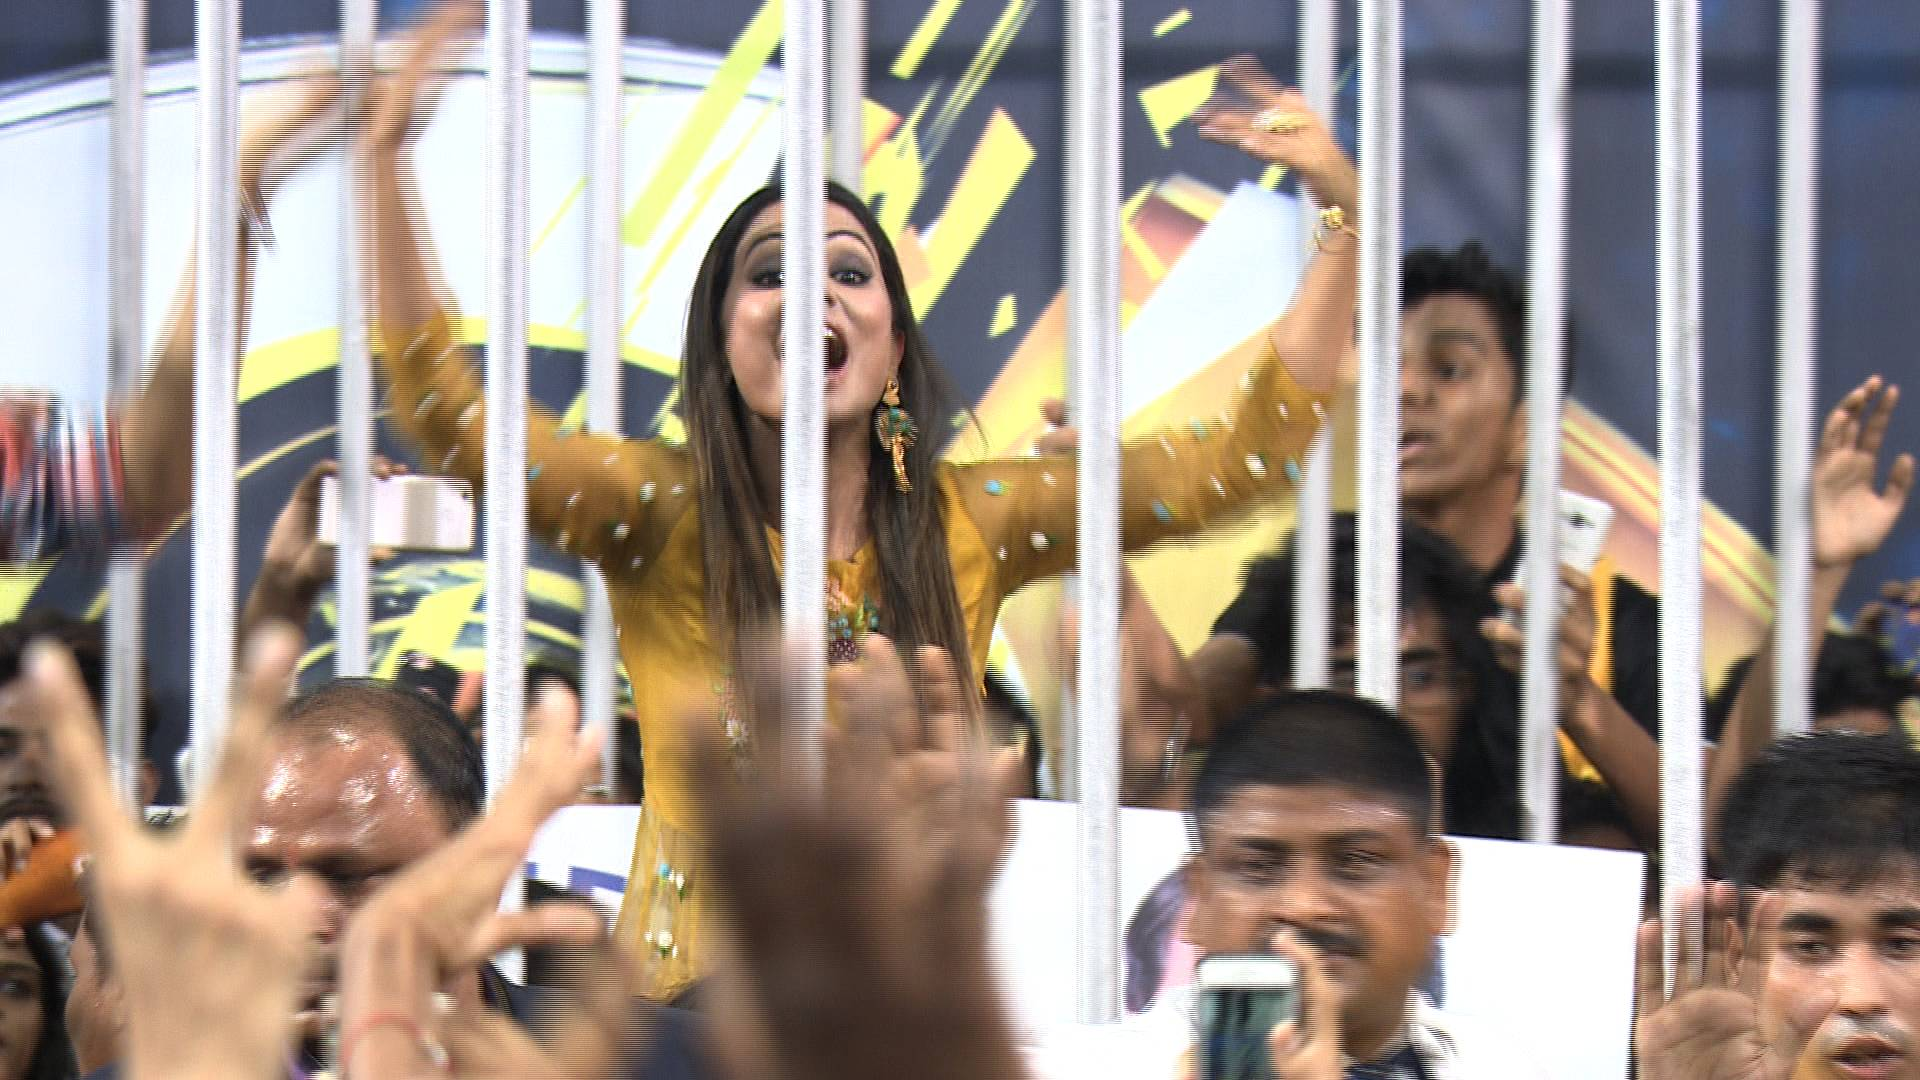 Bigg Boss 11: Nominated housemates appeared in public and the crowd went crazy!